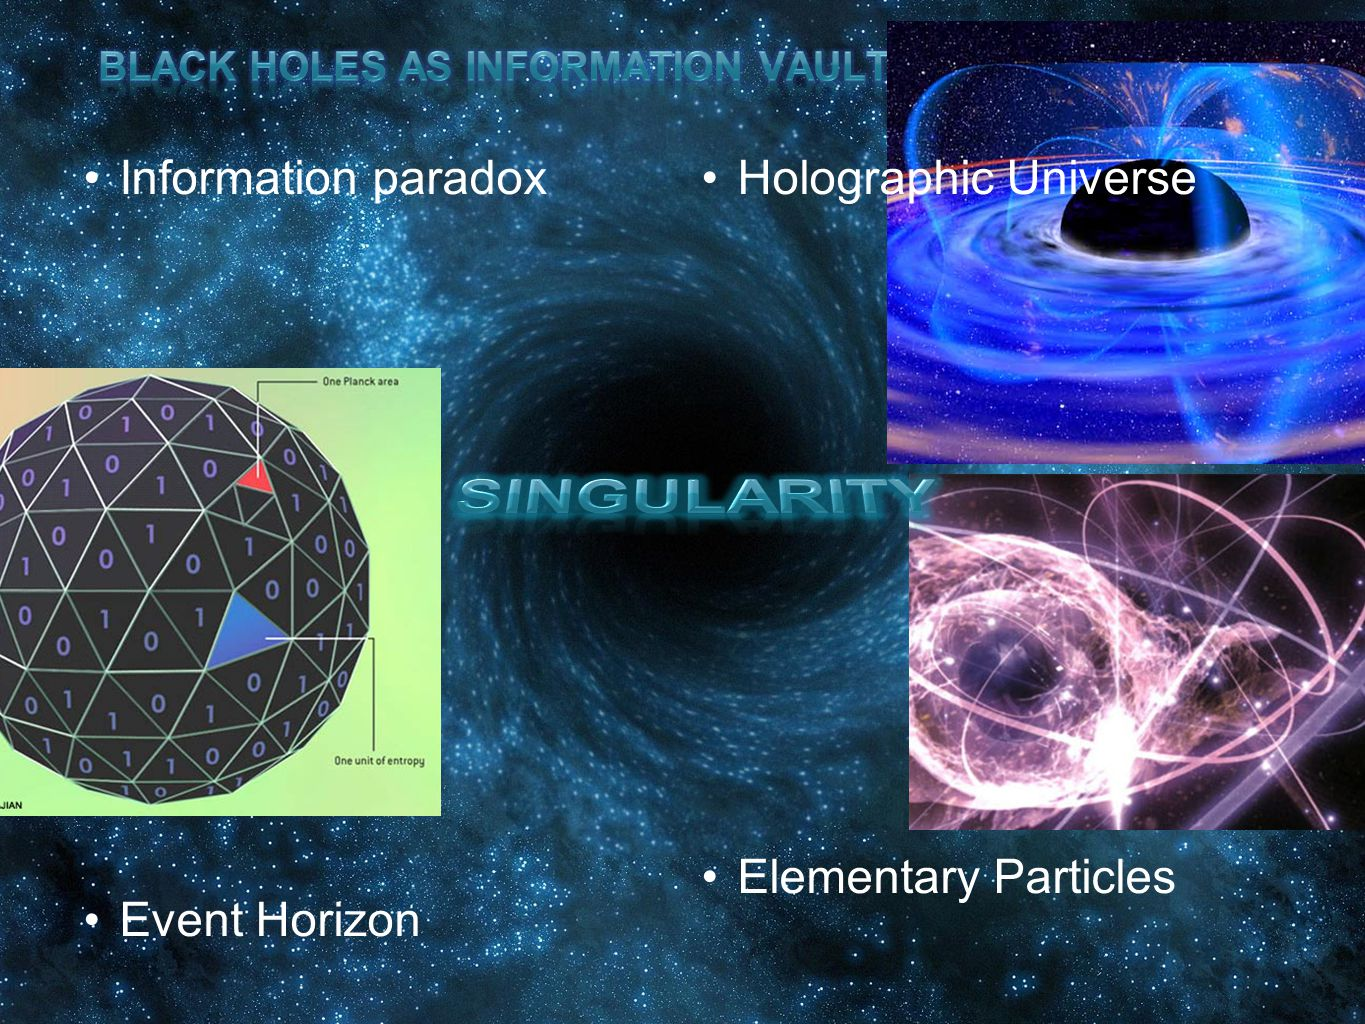 Black Holes as INFORMATION VAULTS